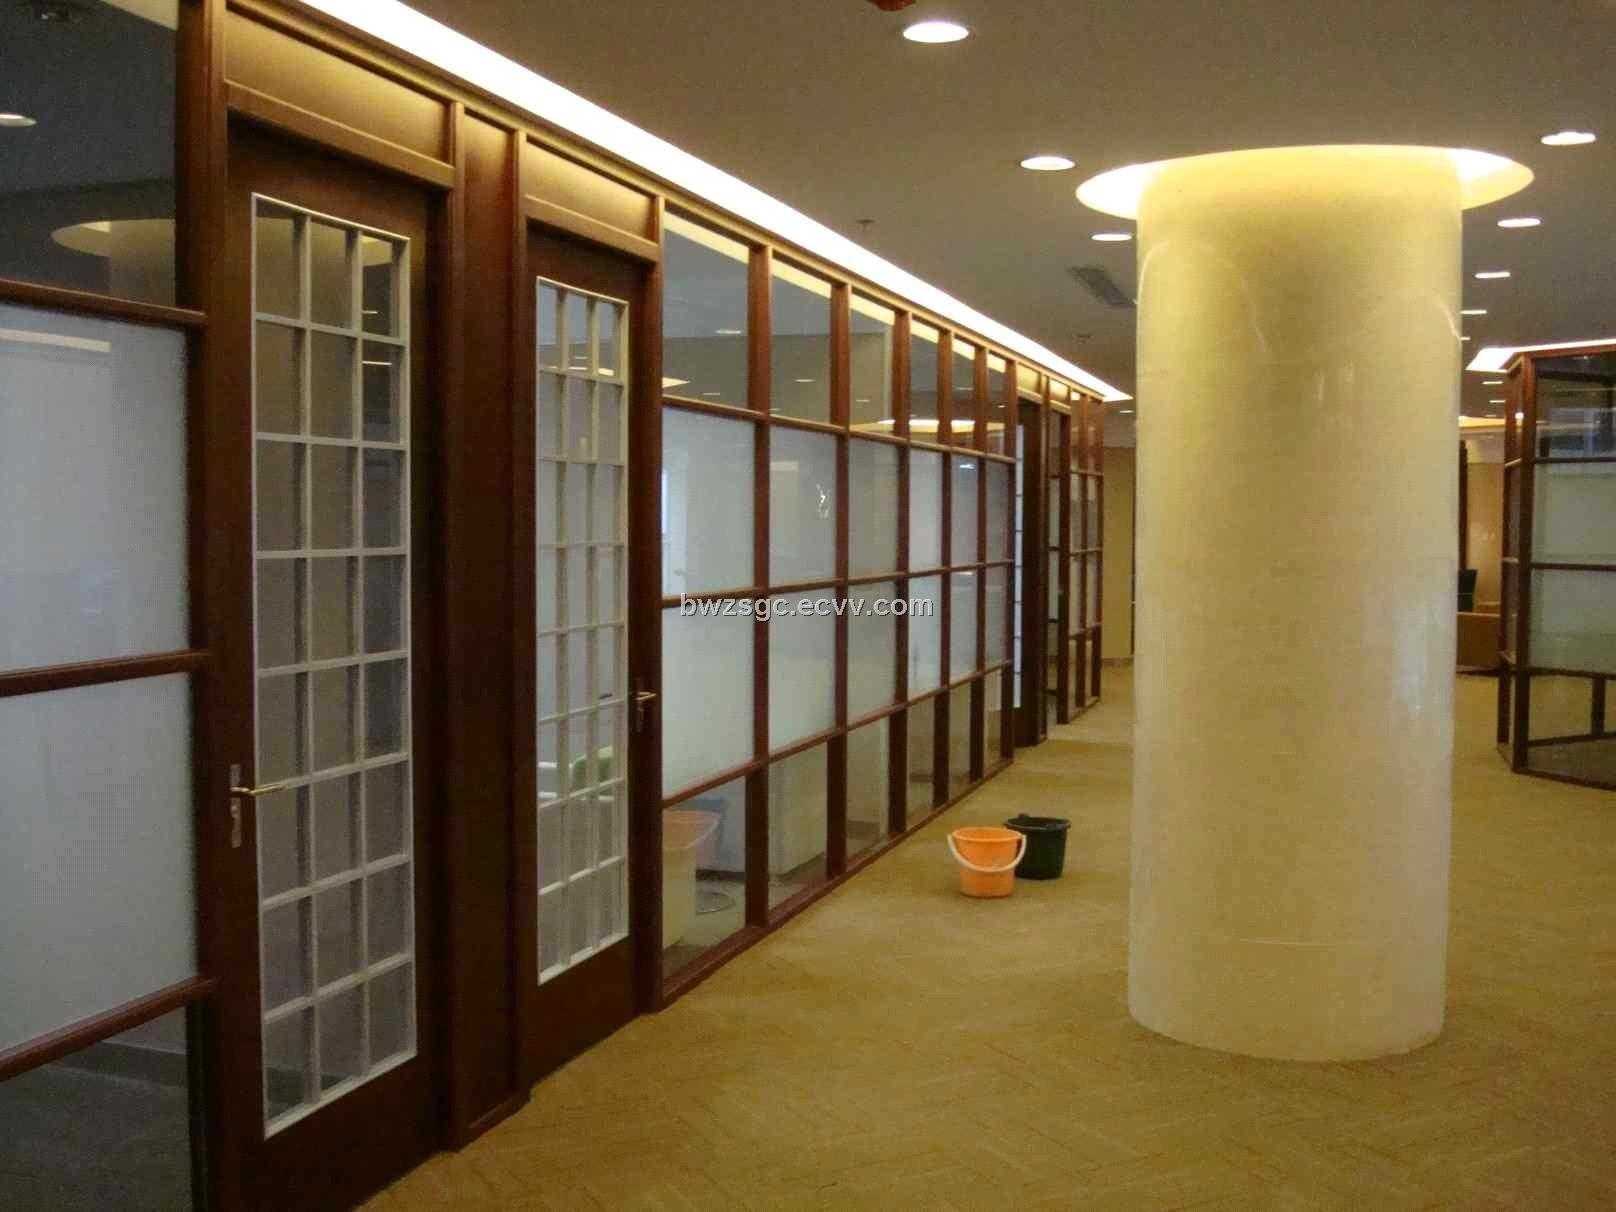 China Office Partition Aluminium Alloy Glass Room